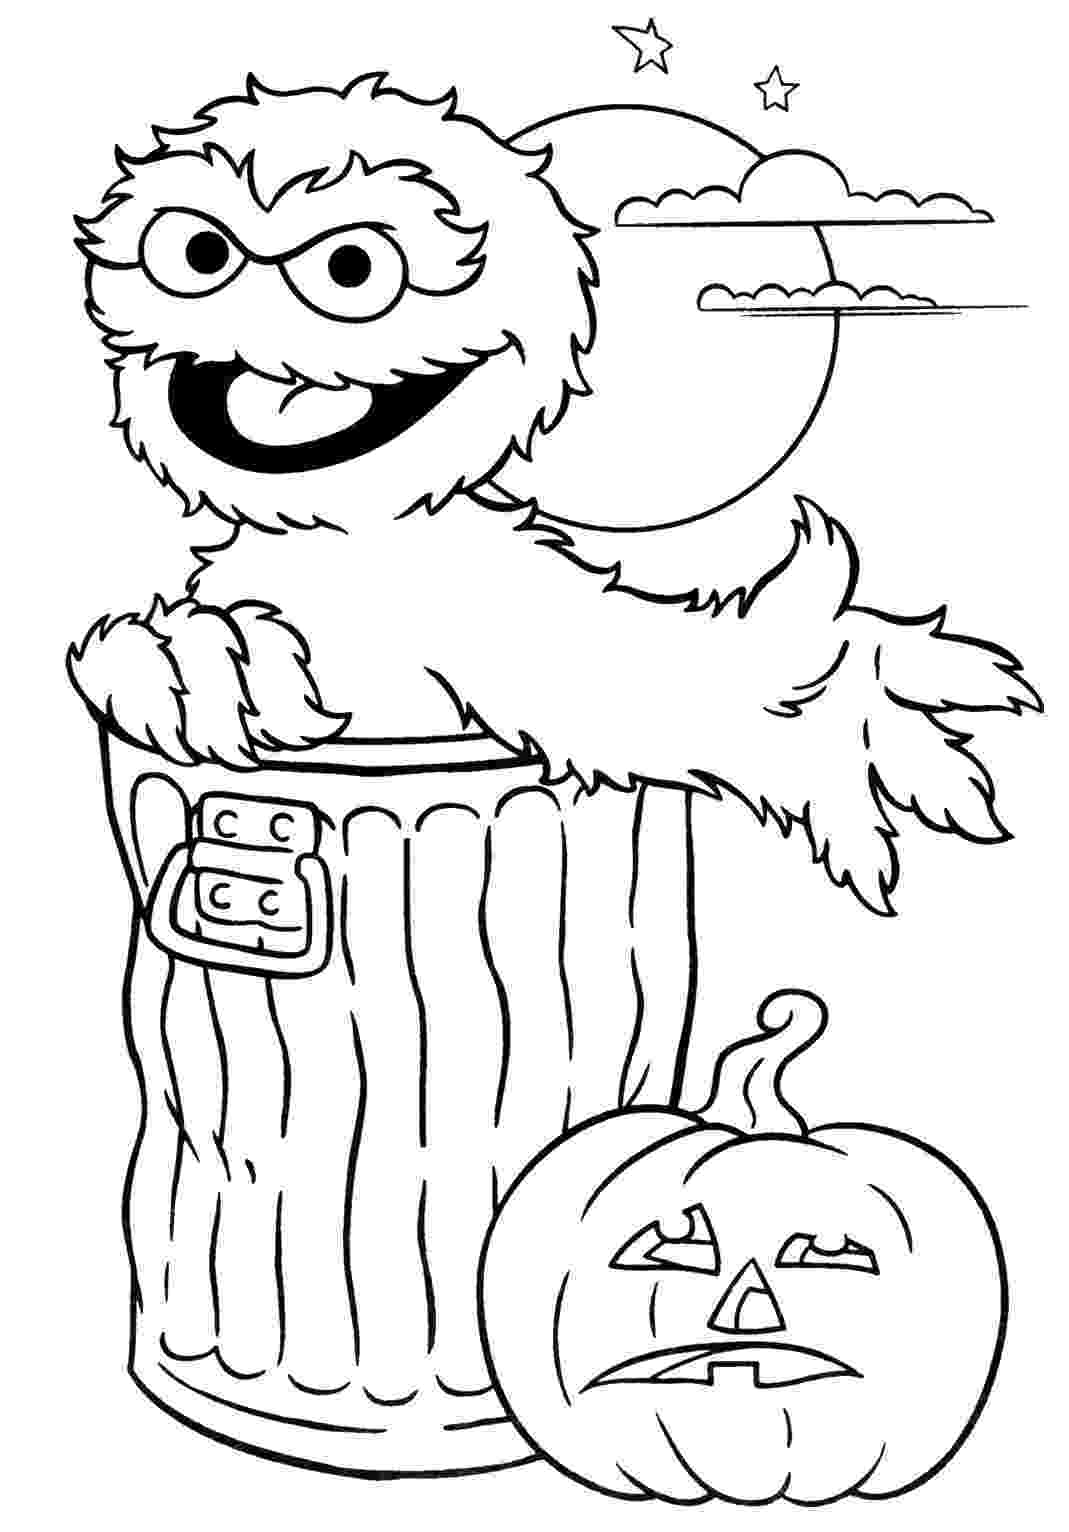 coloring page halloween printable printable spongebob coloring pages for kids cool2bkids printable halloween page coloring